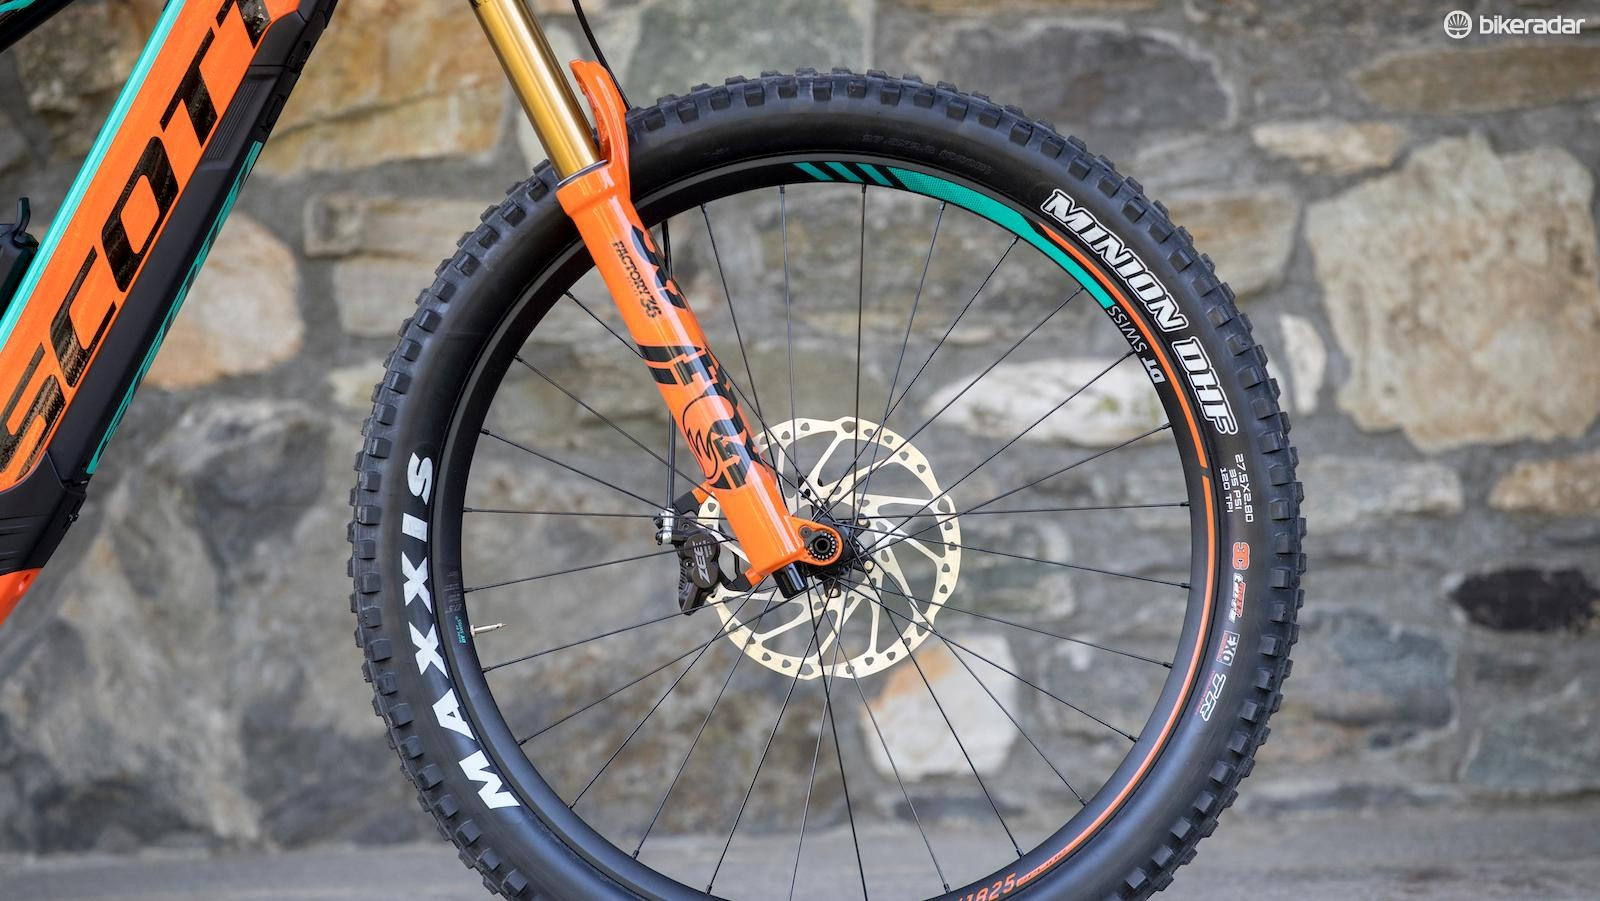 "E-bike specific Fox 36 forks, Shimano Zee brakes, 30mm-wide Aluminium DT Swiss wheels and 2.8"" Maxxis Minion tyres are all solid spec choices"